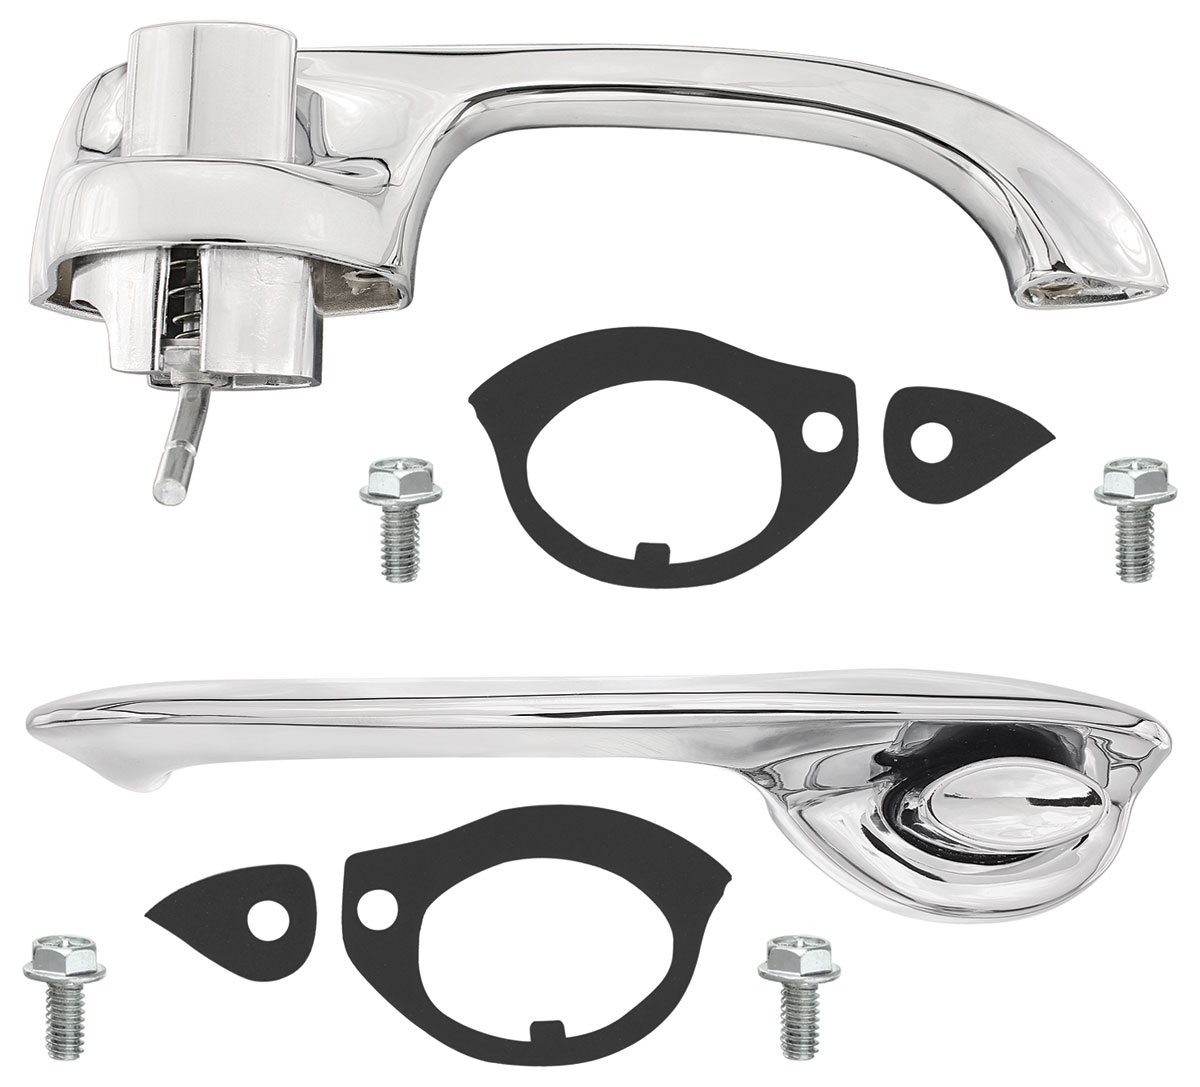 USA-Made Skylark Front Door Handle Assembly New Trim Parts! 1970-72 Chevelle